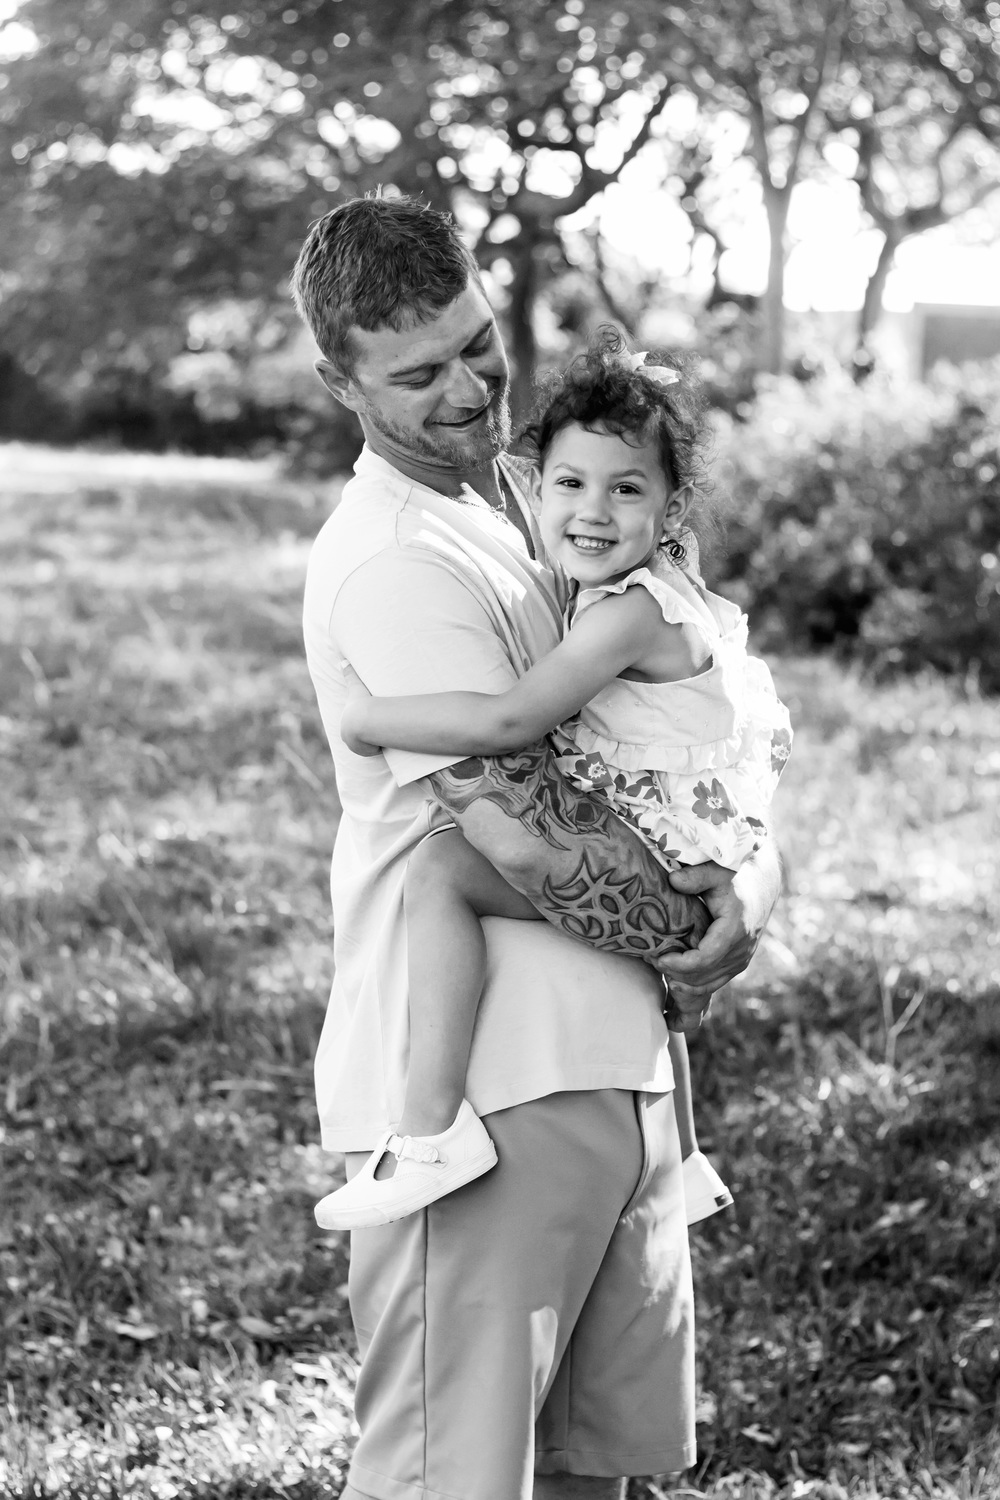 TIFFANY_ABRUZZO_PHOTOGRAPHY_ENGAGEMENT_22bw.jpg